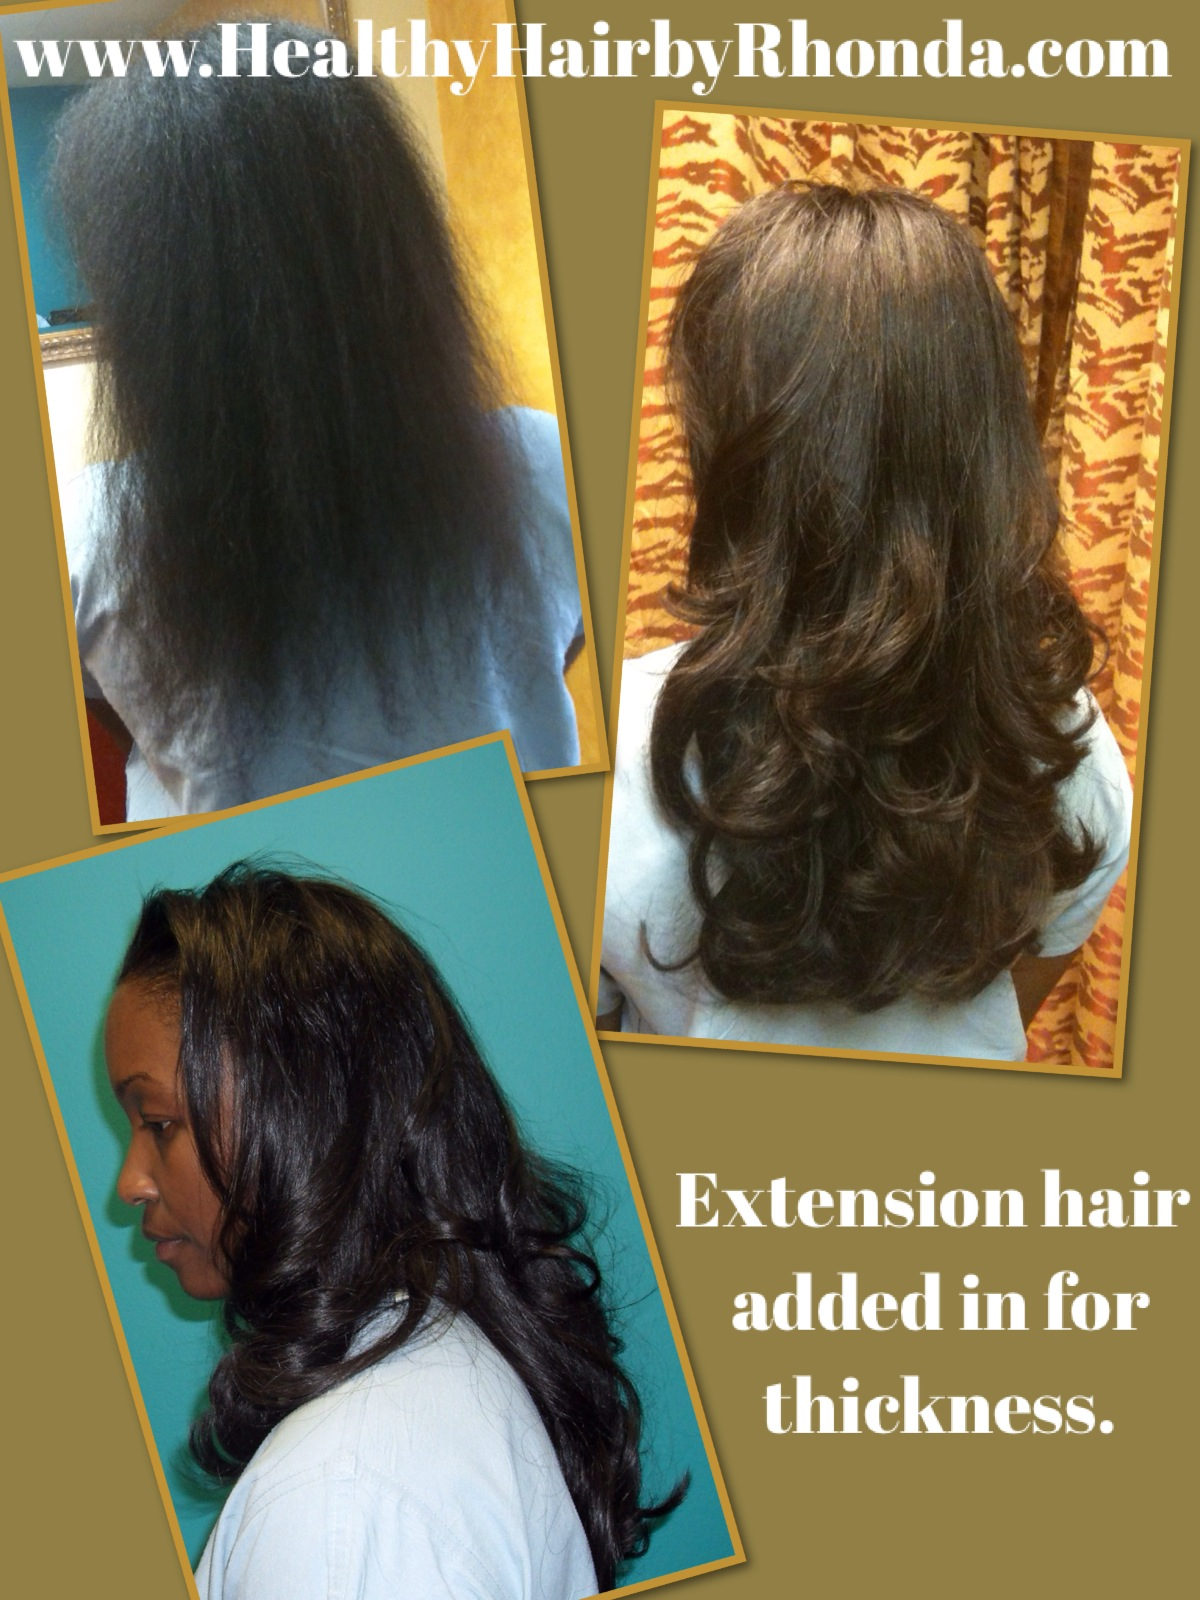 Healthy Hair By Rhonda